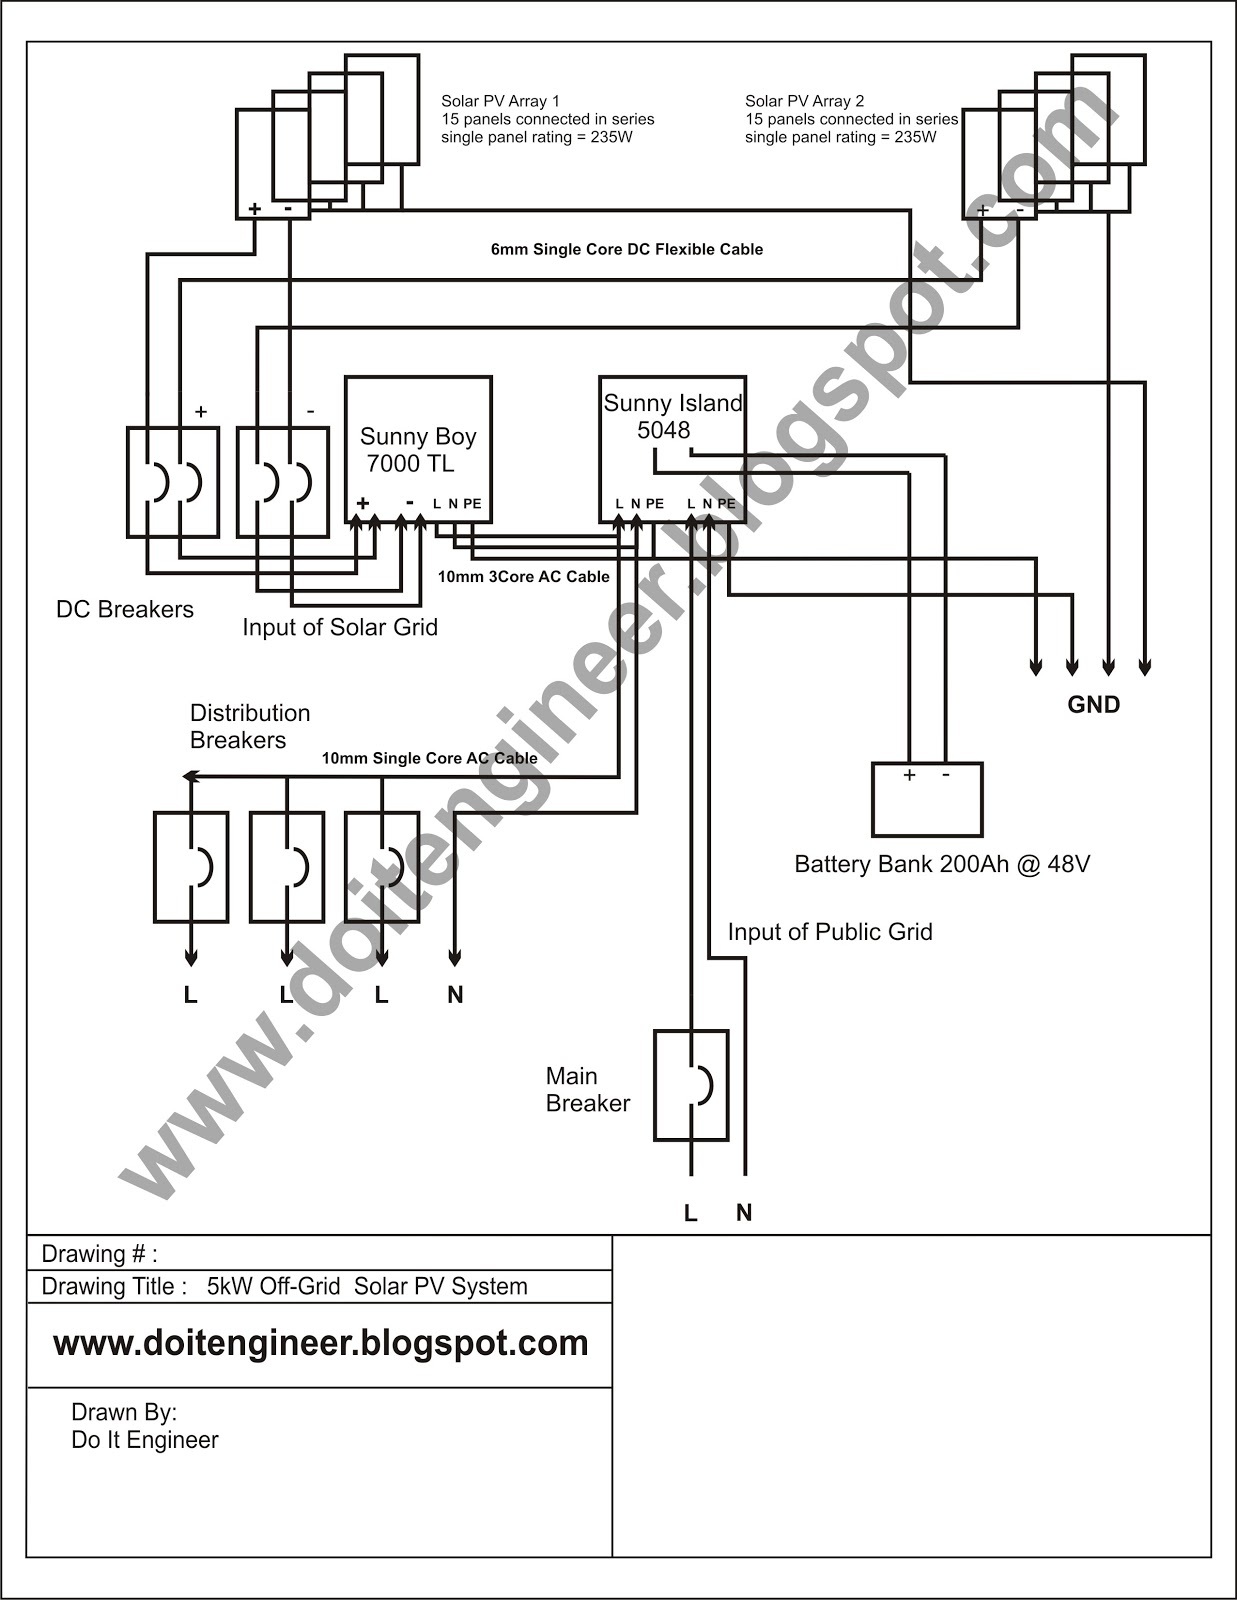 Solar Pv Wiring Diagram from 2.bp.blogspot.com